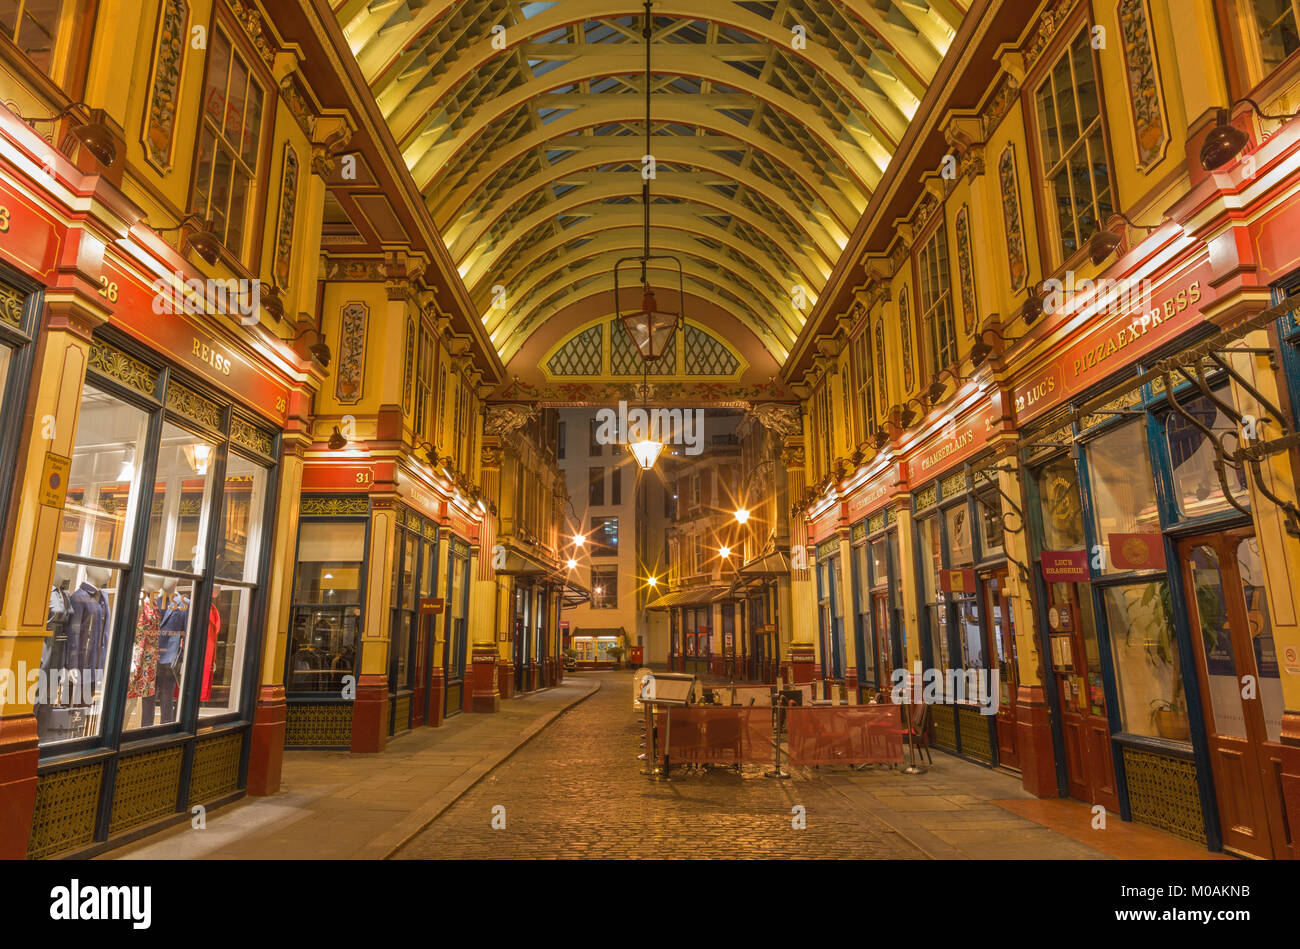 LONDON, GREAT BRITAIN - SEPTEMBER 18, 2017: The gallery of Leadenhall market at night. - Stock Image